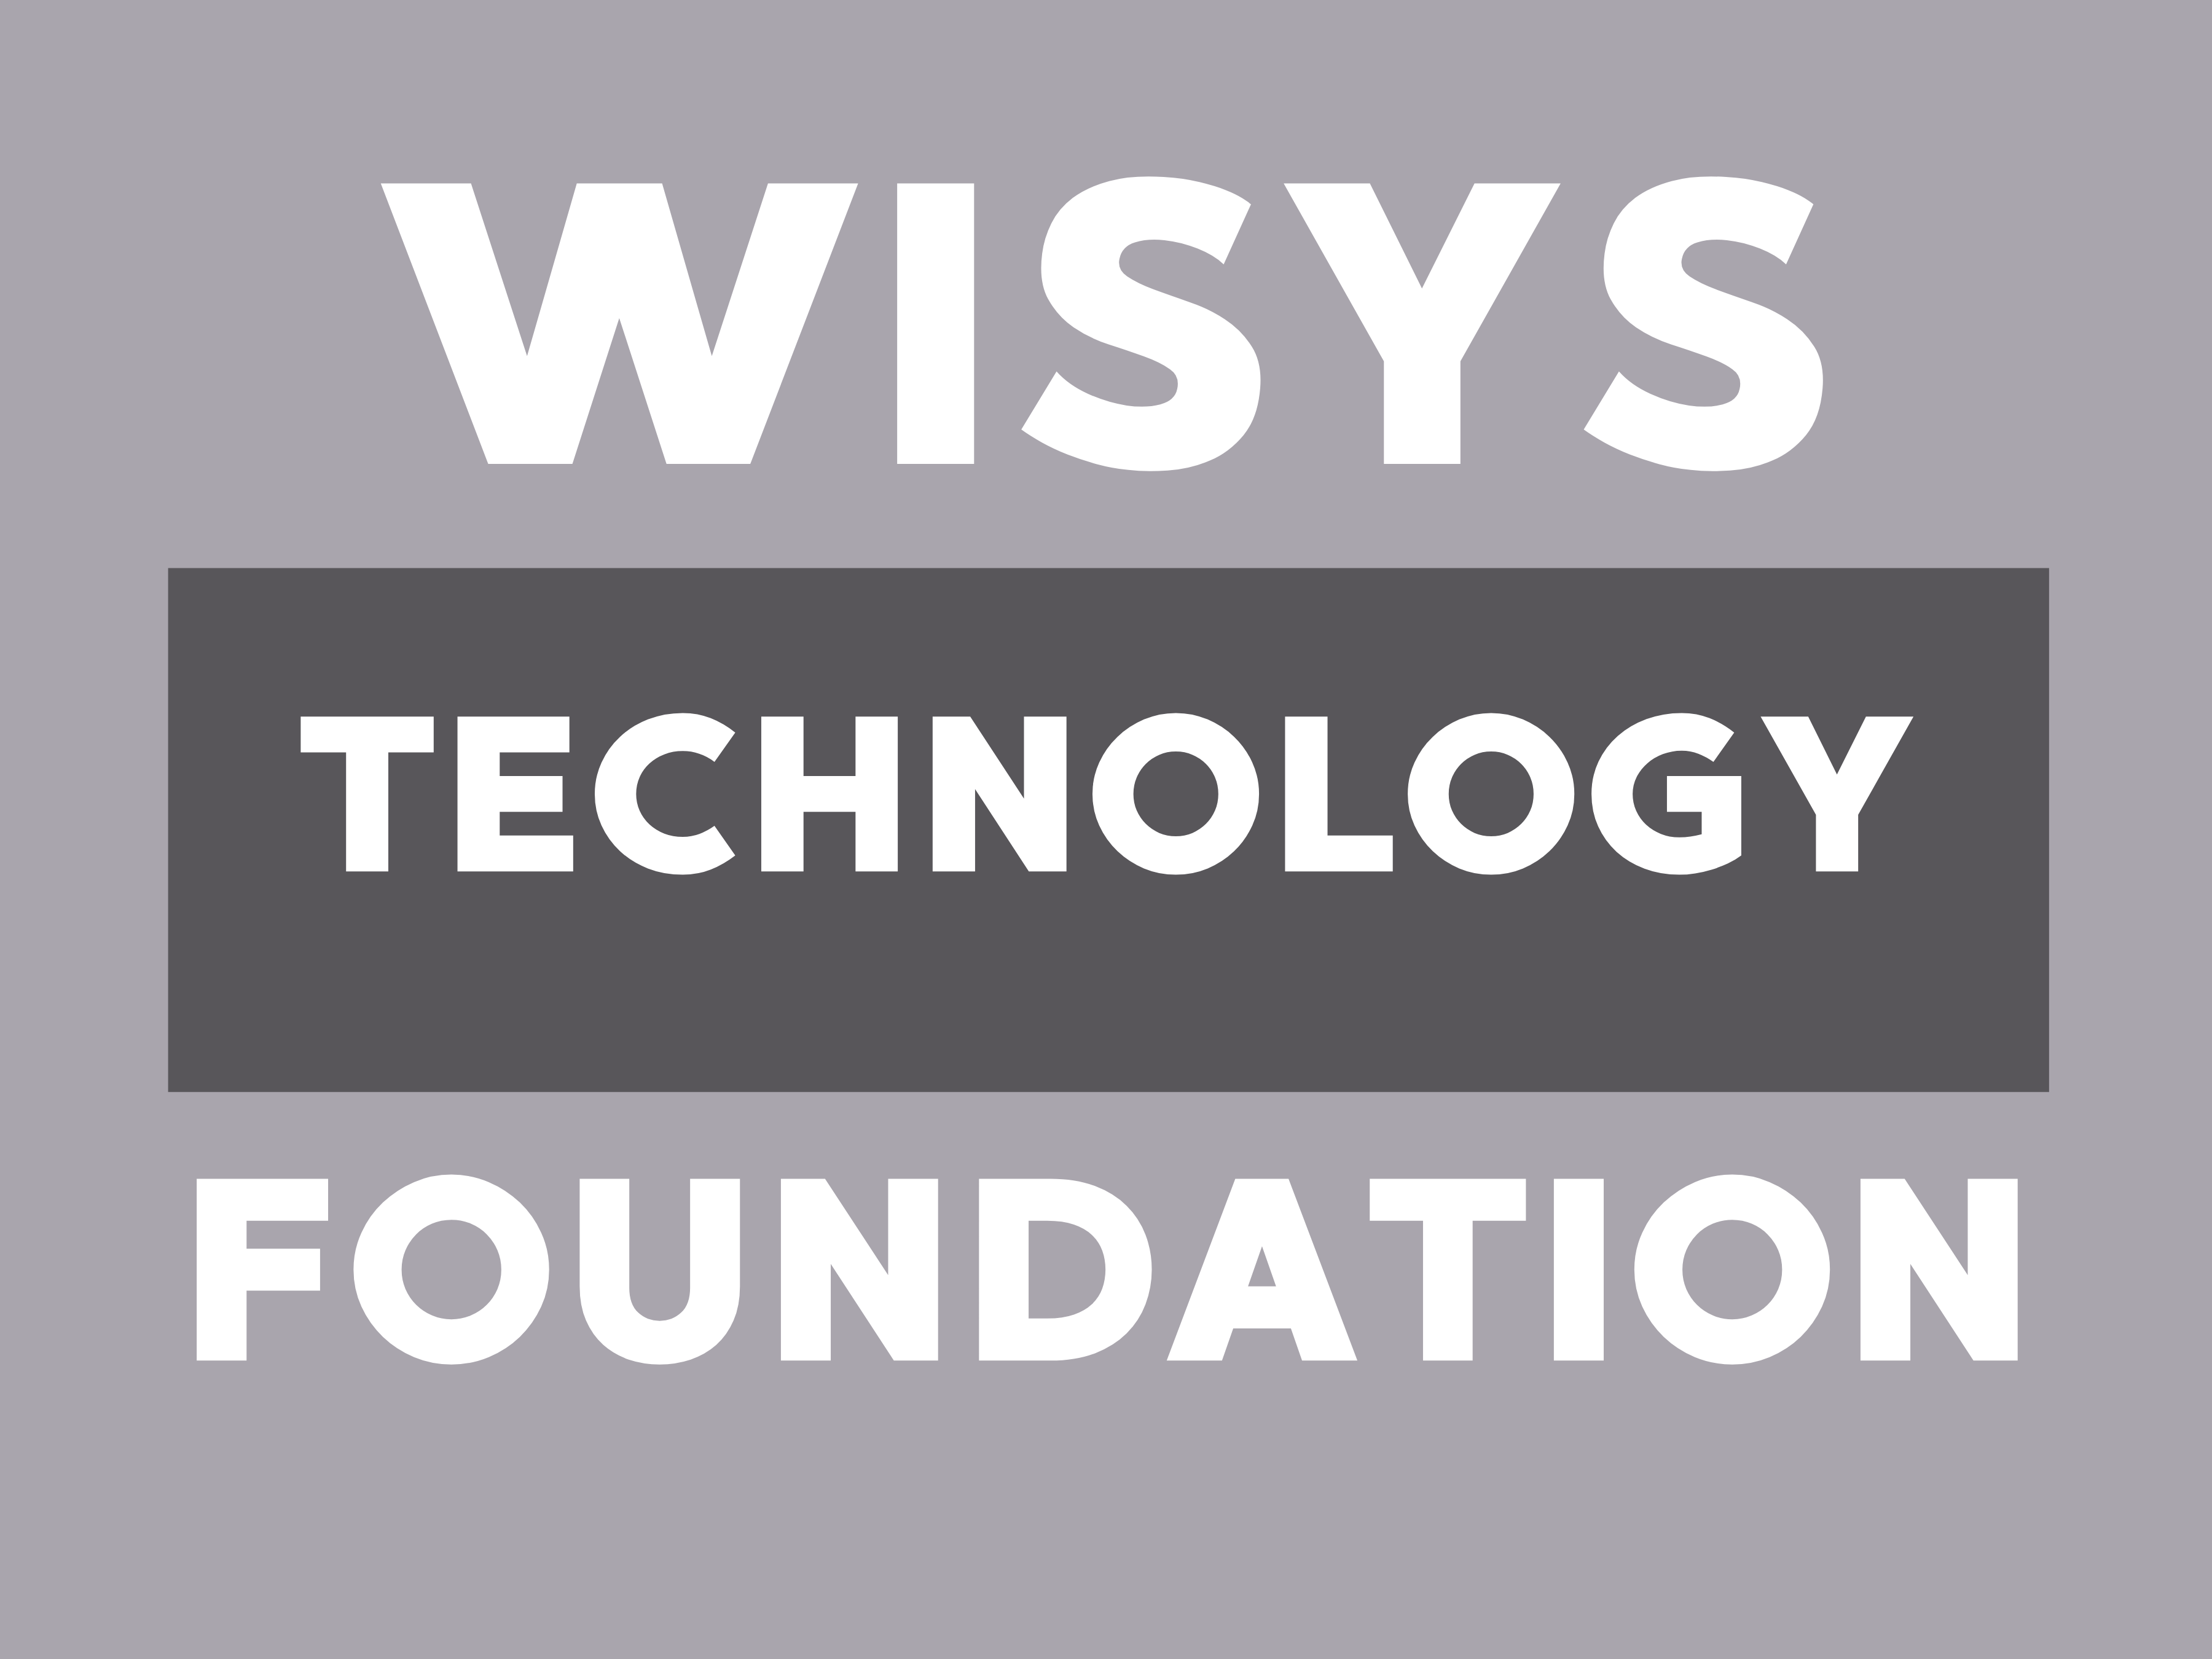 WiSys Technology Foundation